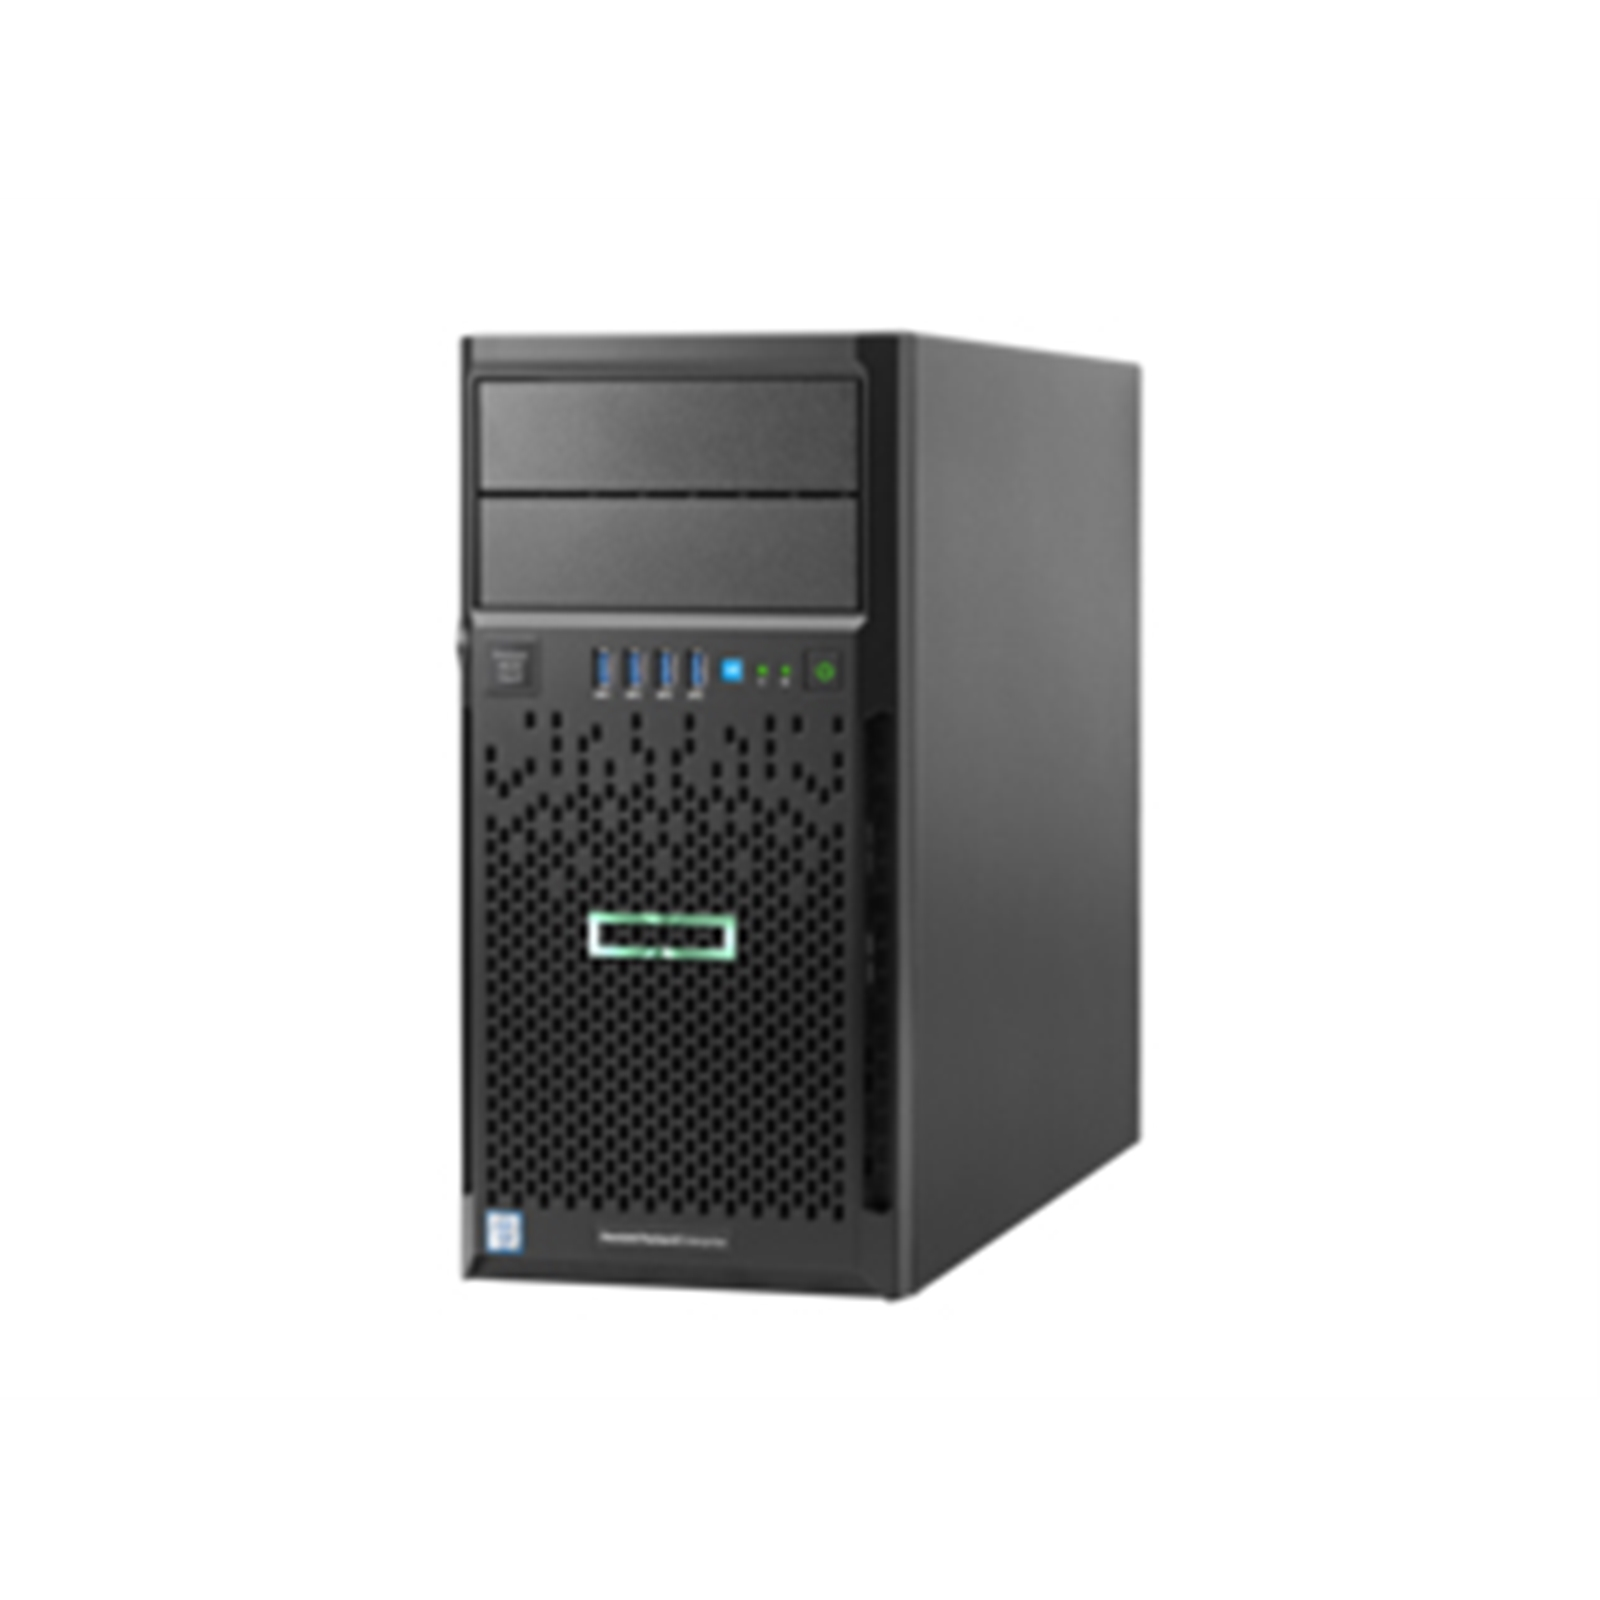 HPE P03707-425 ENTERPRISE HP PROLIANT ML30 GEN9 TOWER SERVER